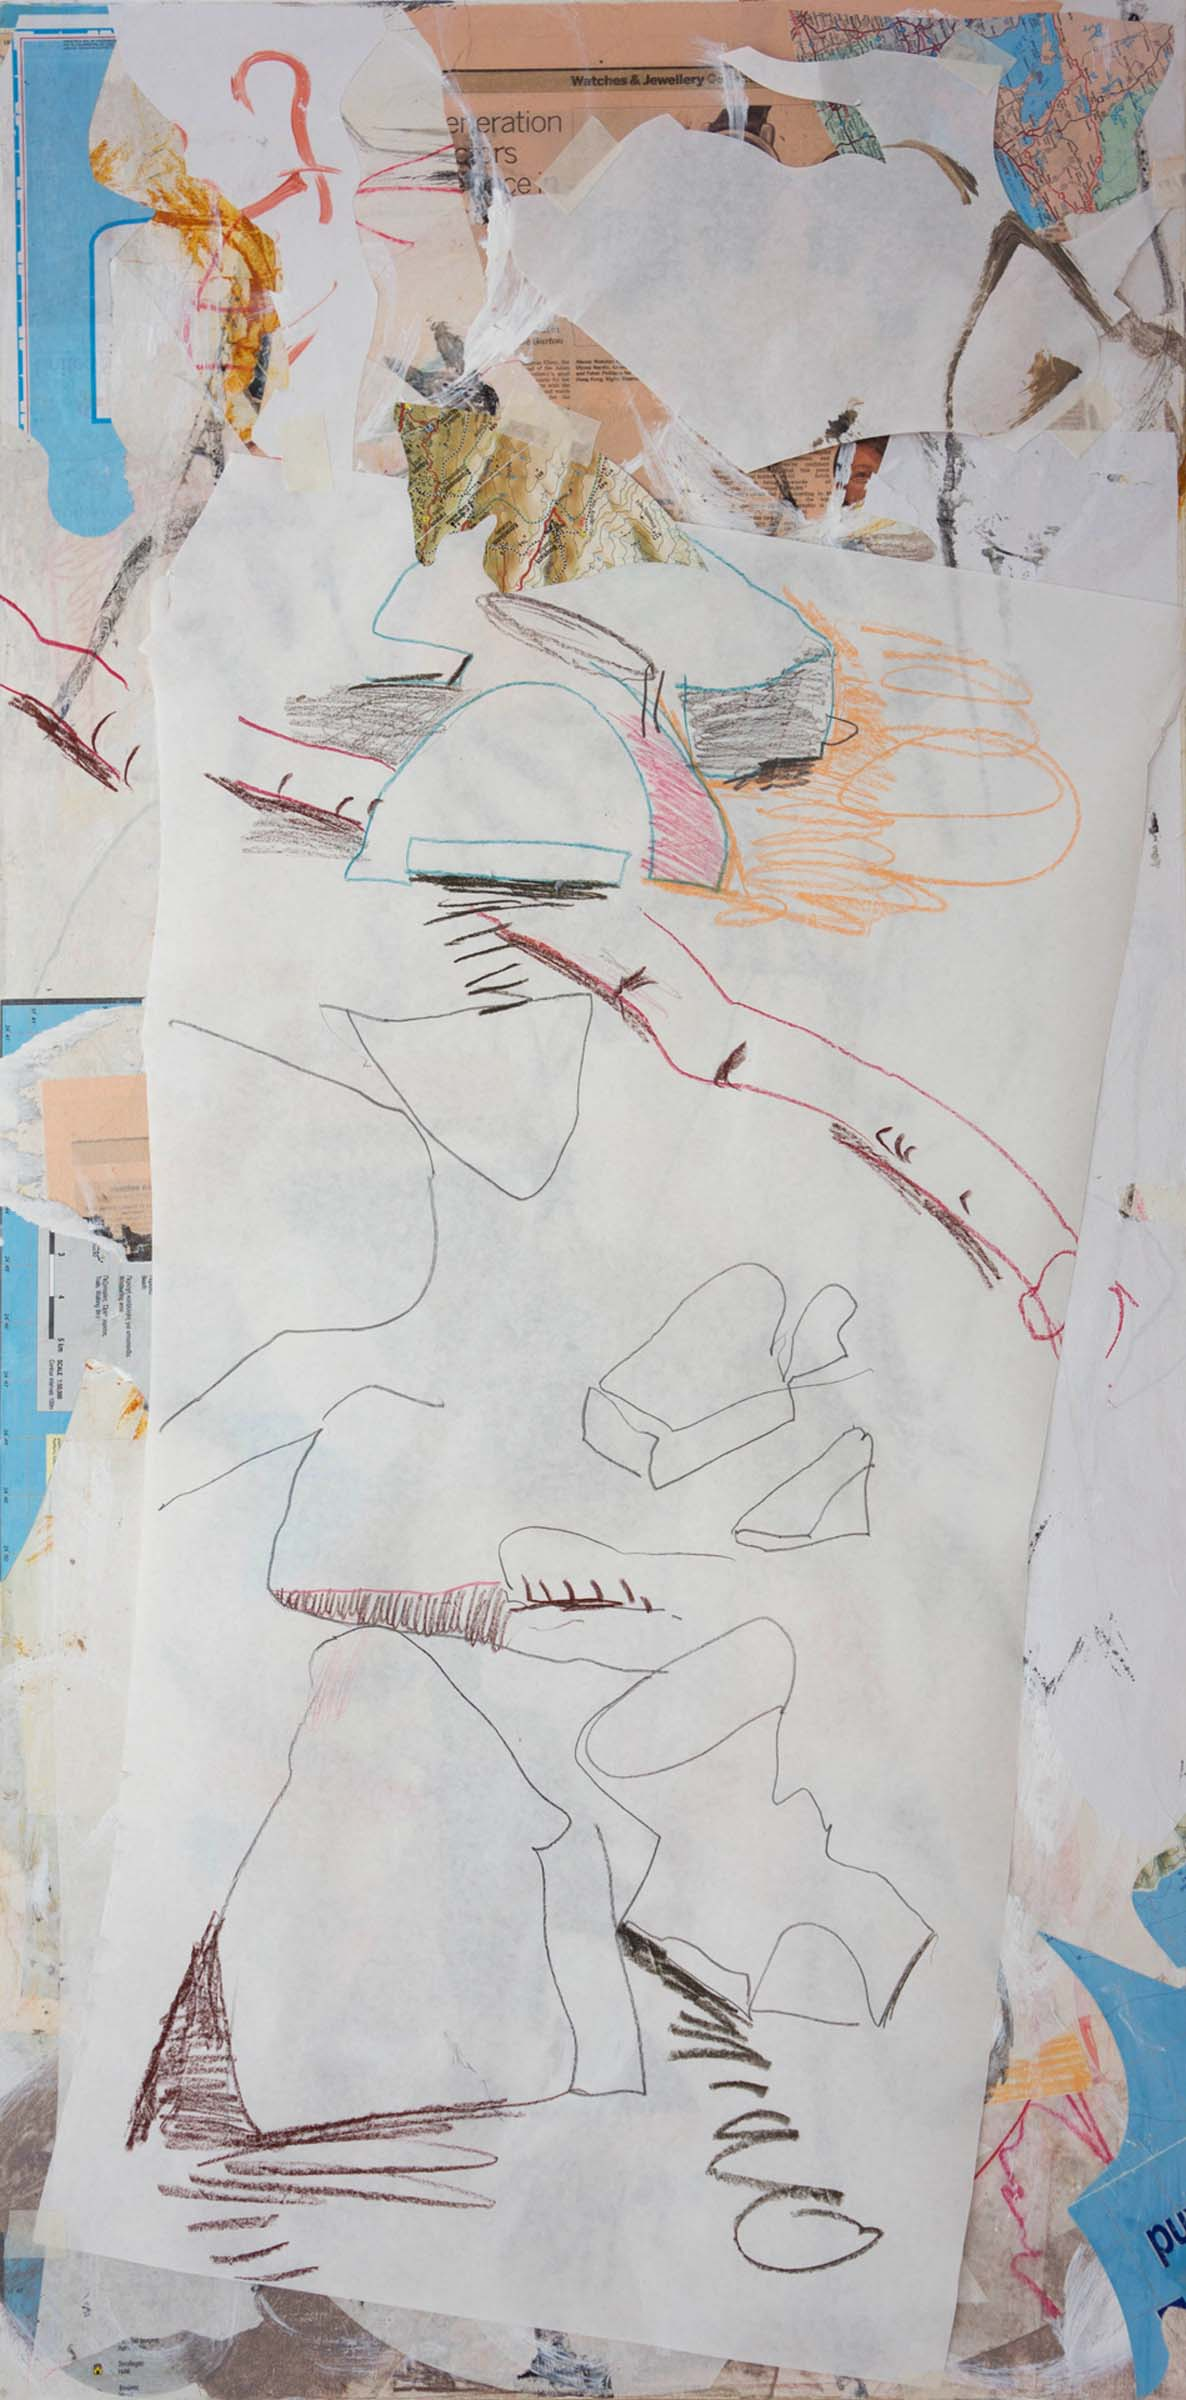 site-4-18-14 Apothikes with paper 48x24 in  1.22x61 cm.jpg